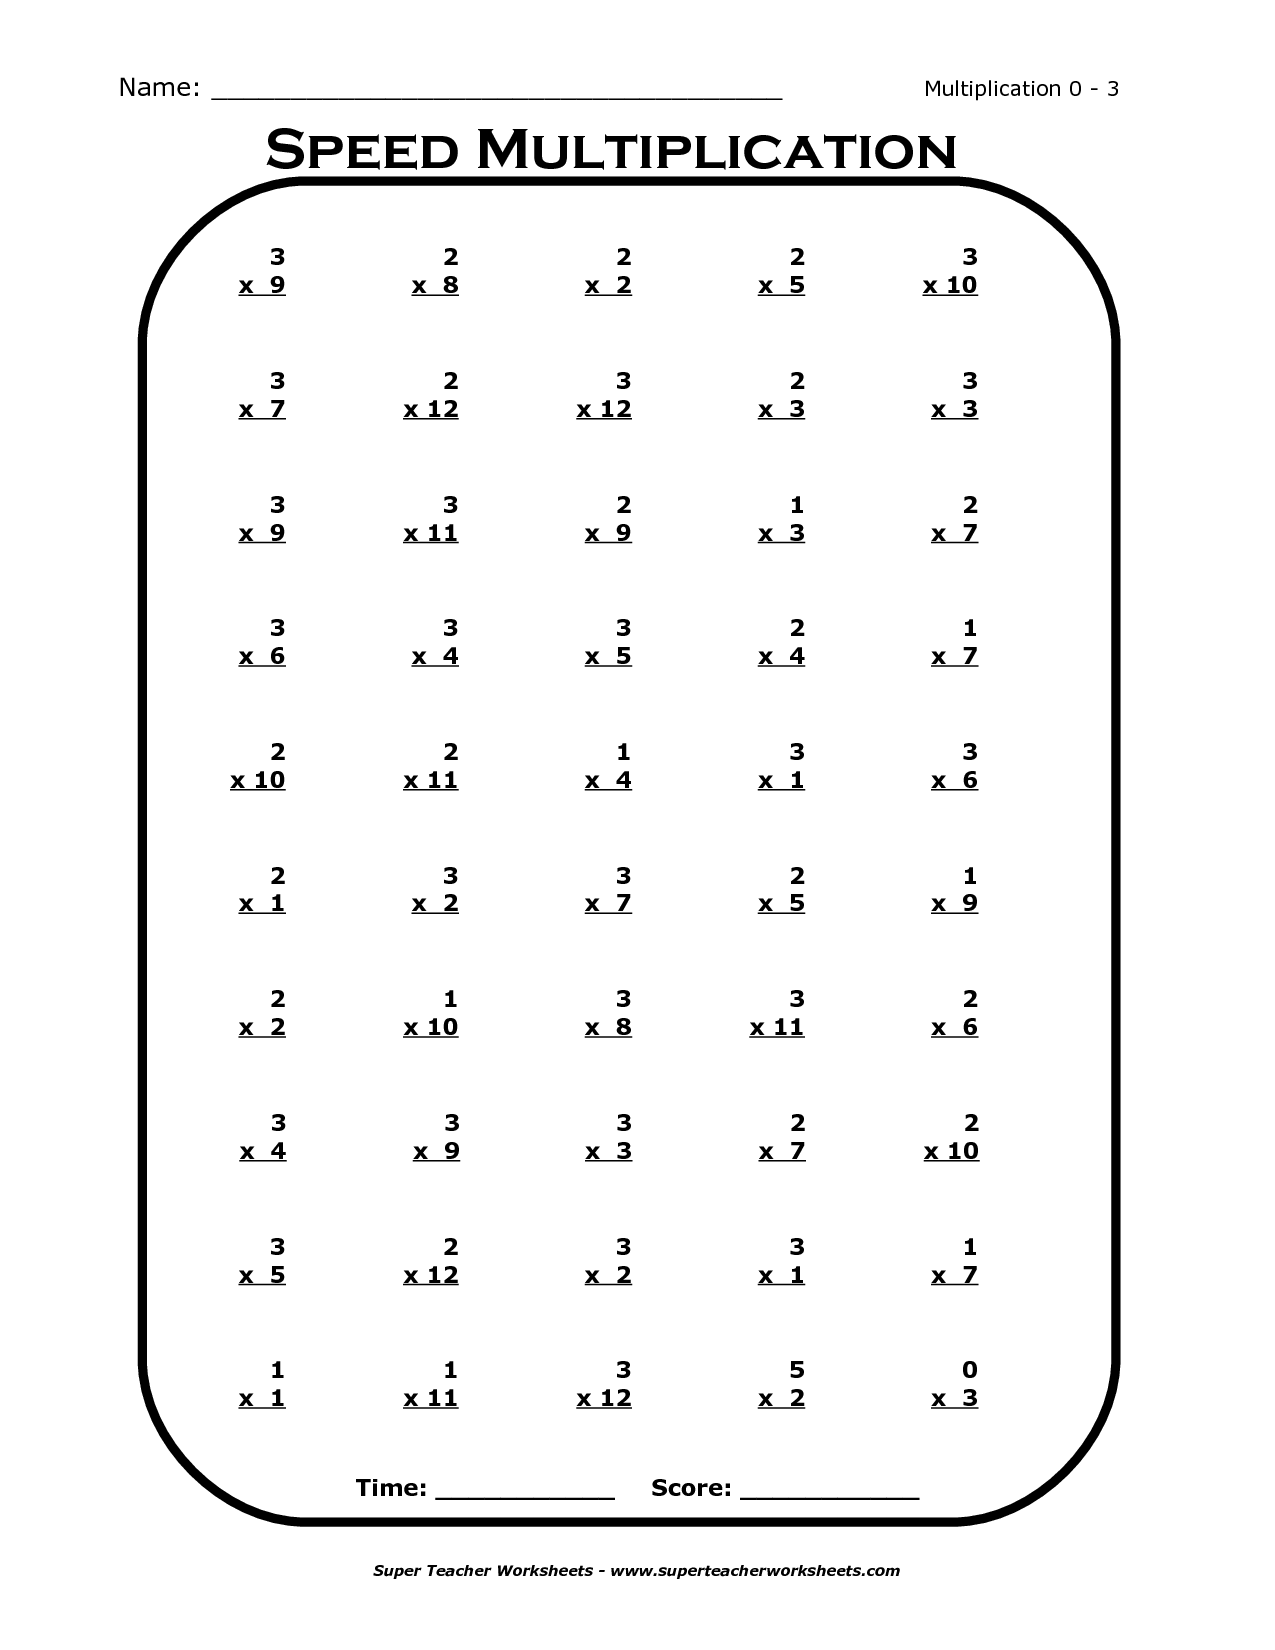 Worksheet Multiplication Table 6-9 multiplication table 6 9 scalien times worksheet versaldobip